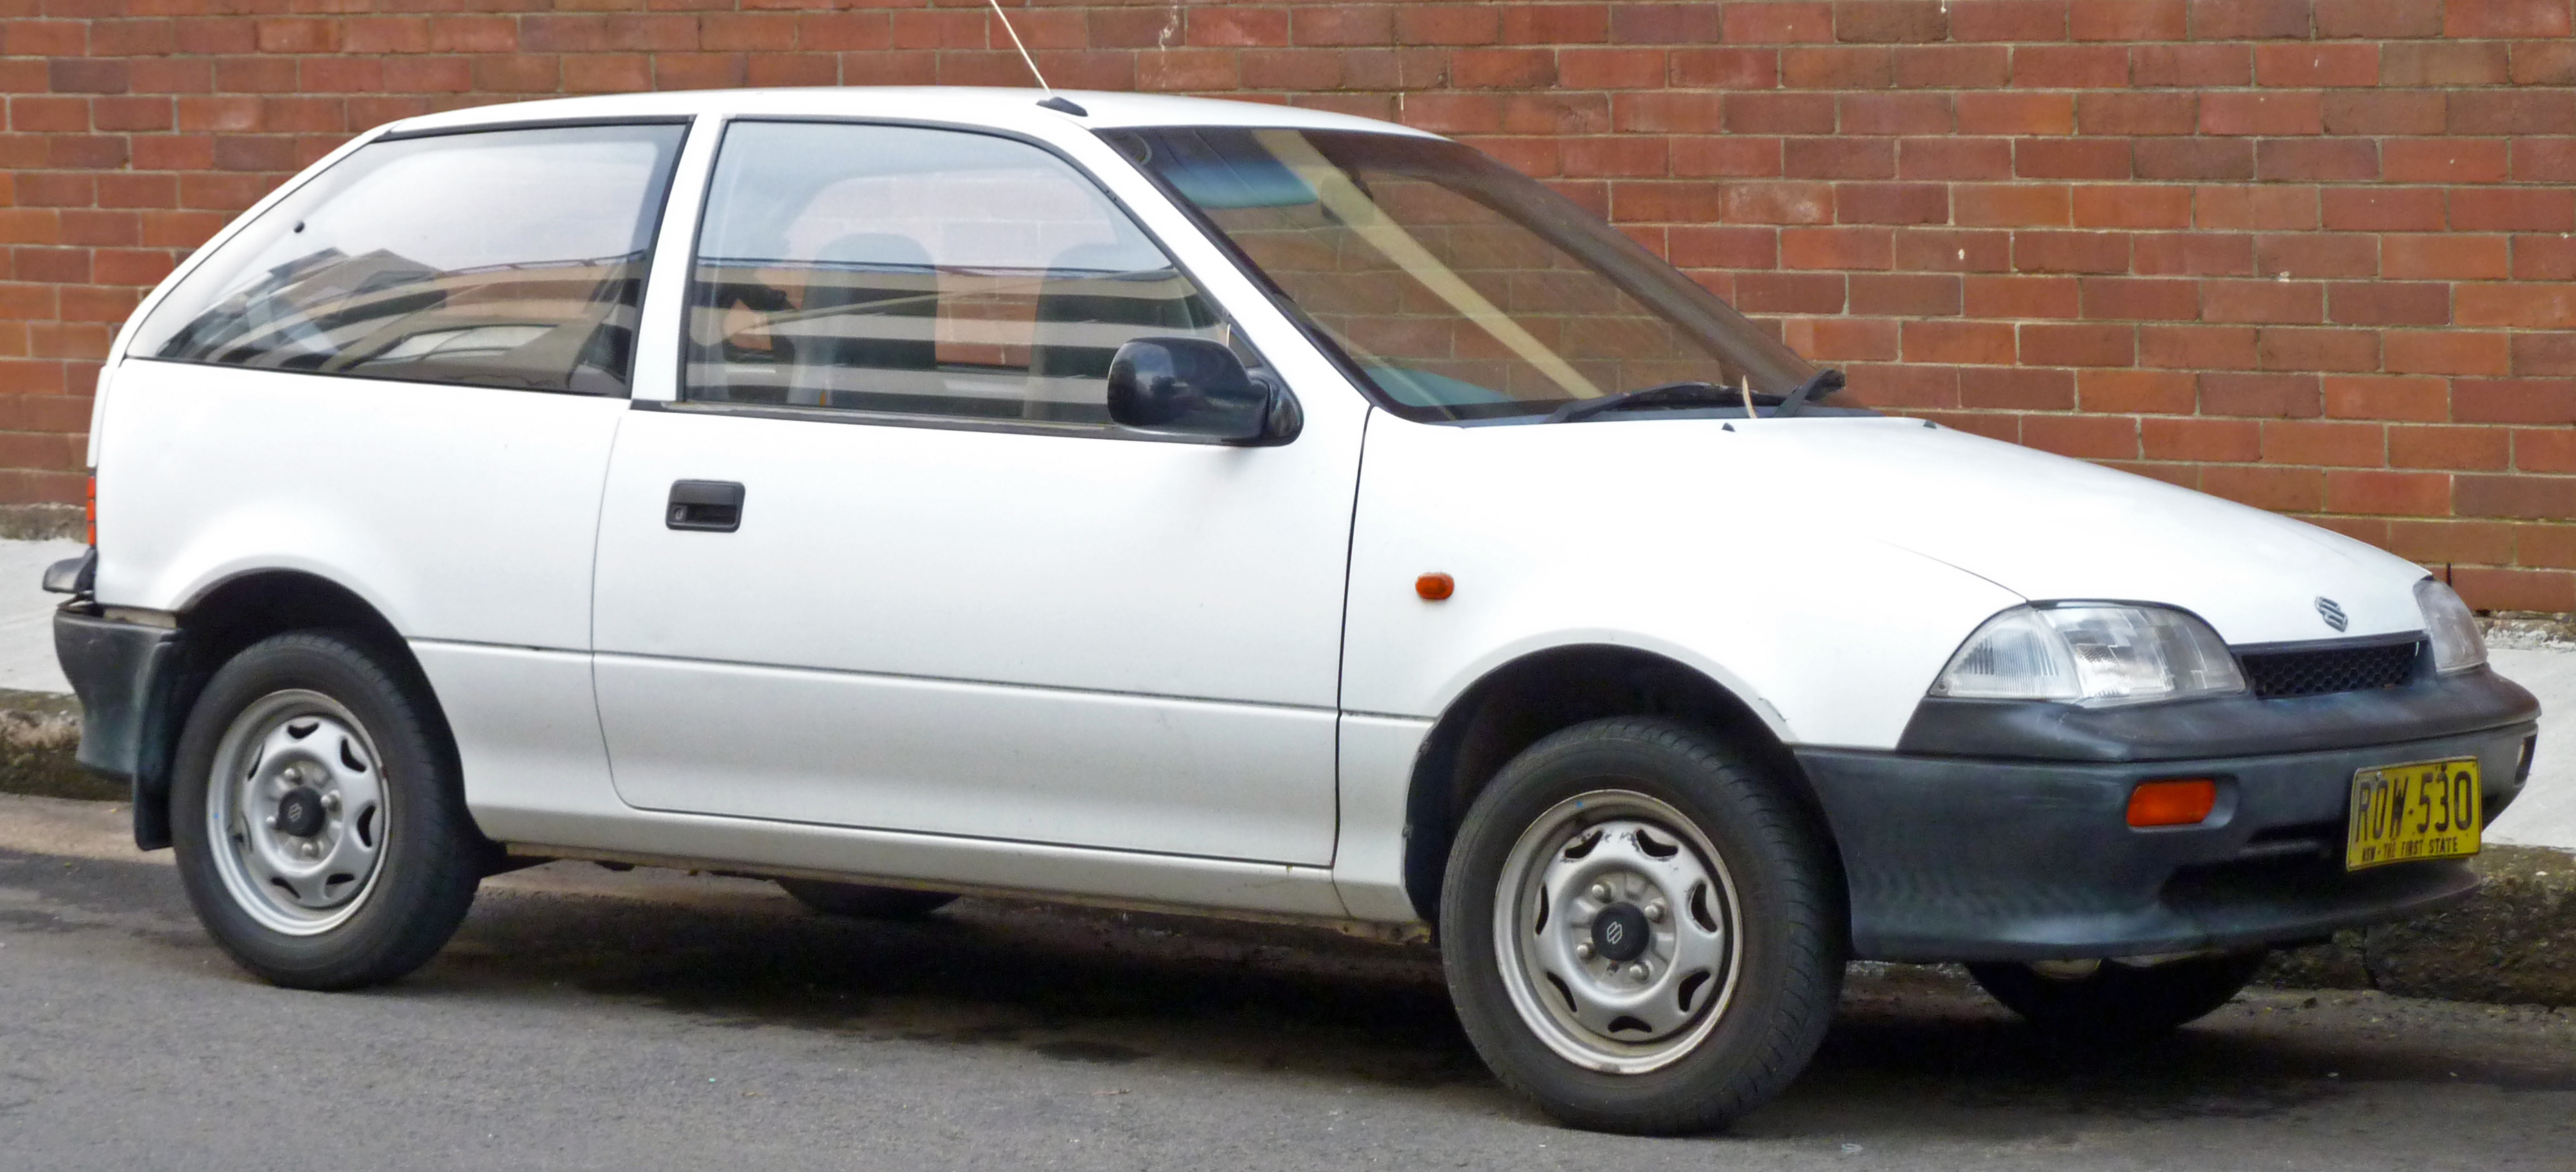 1991 Suzuki Swift #3